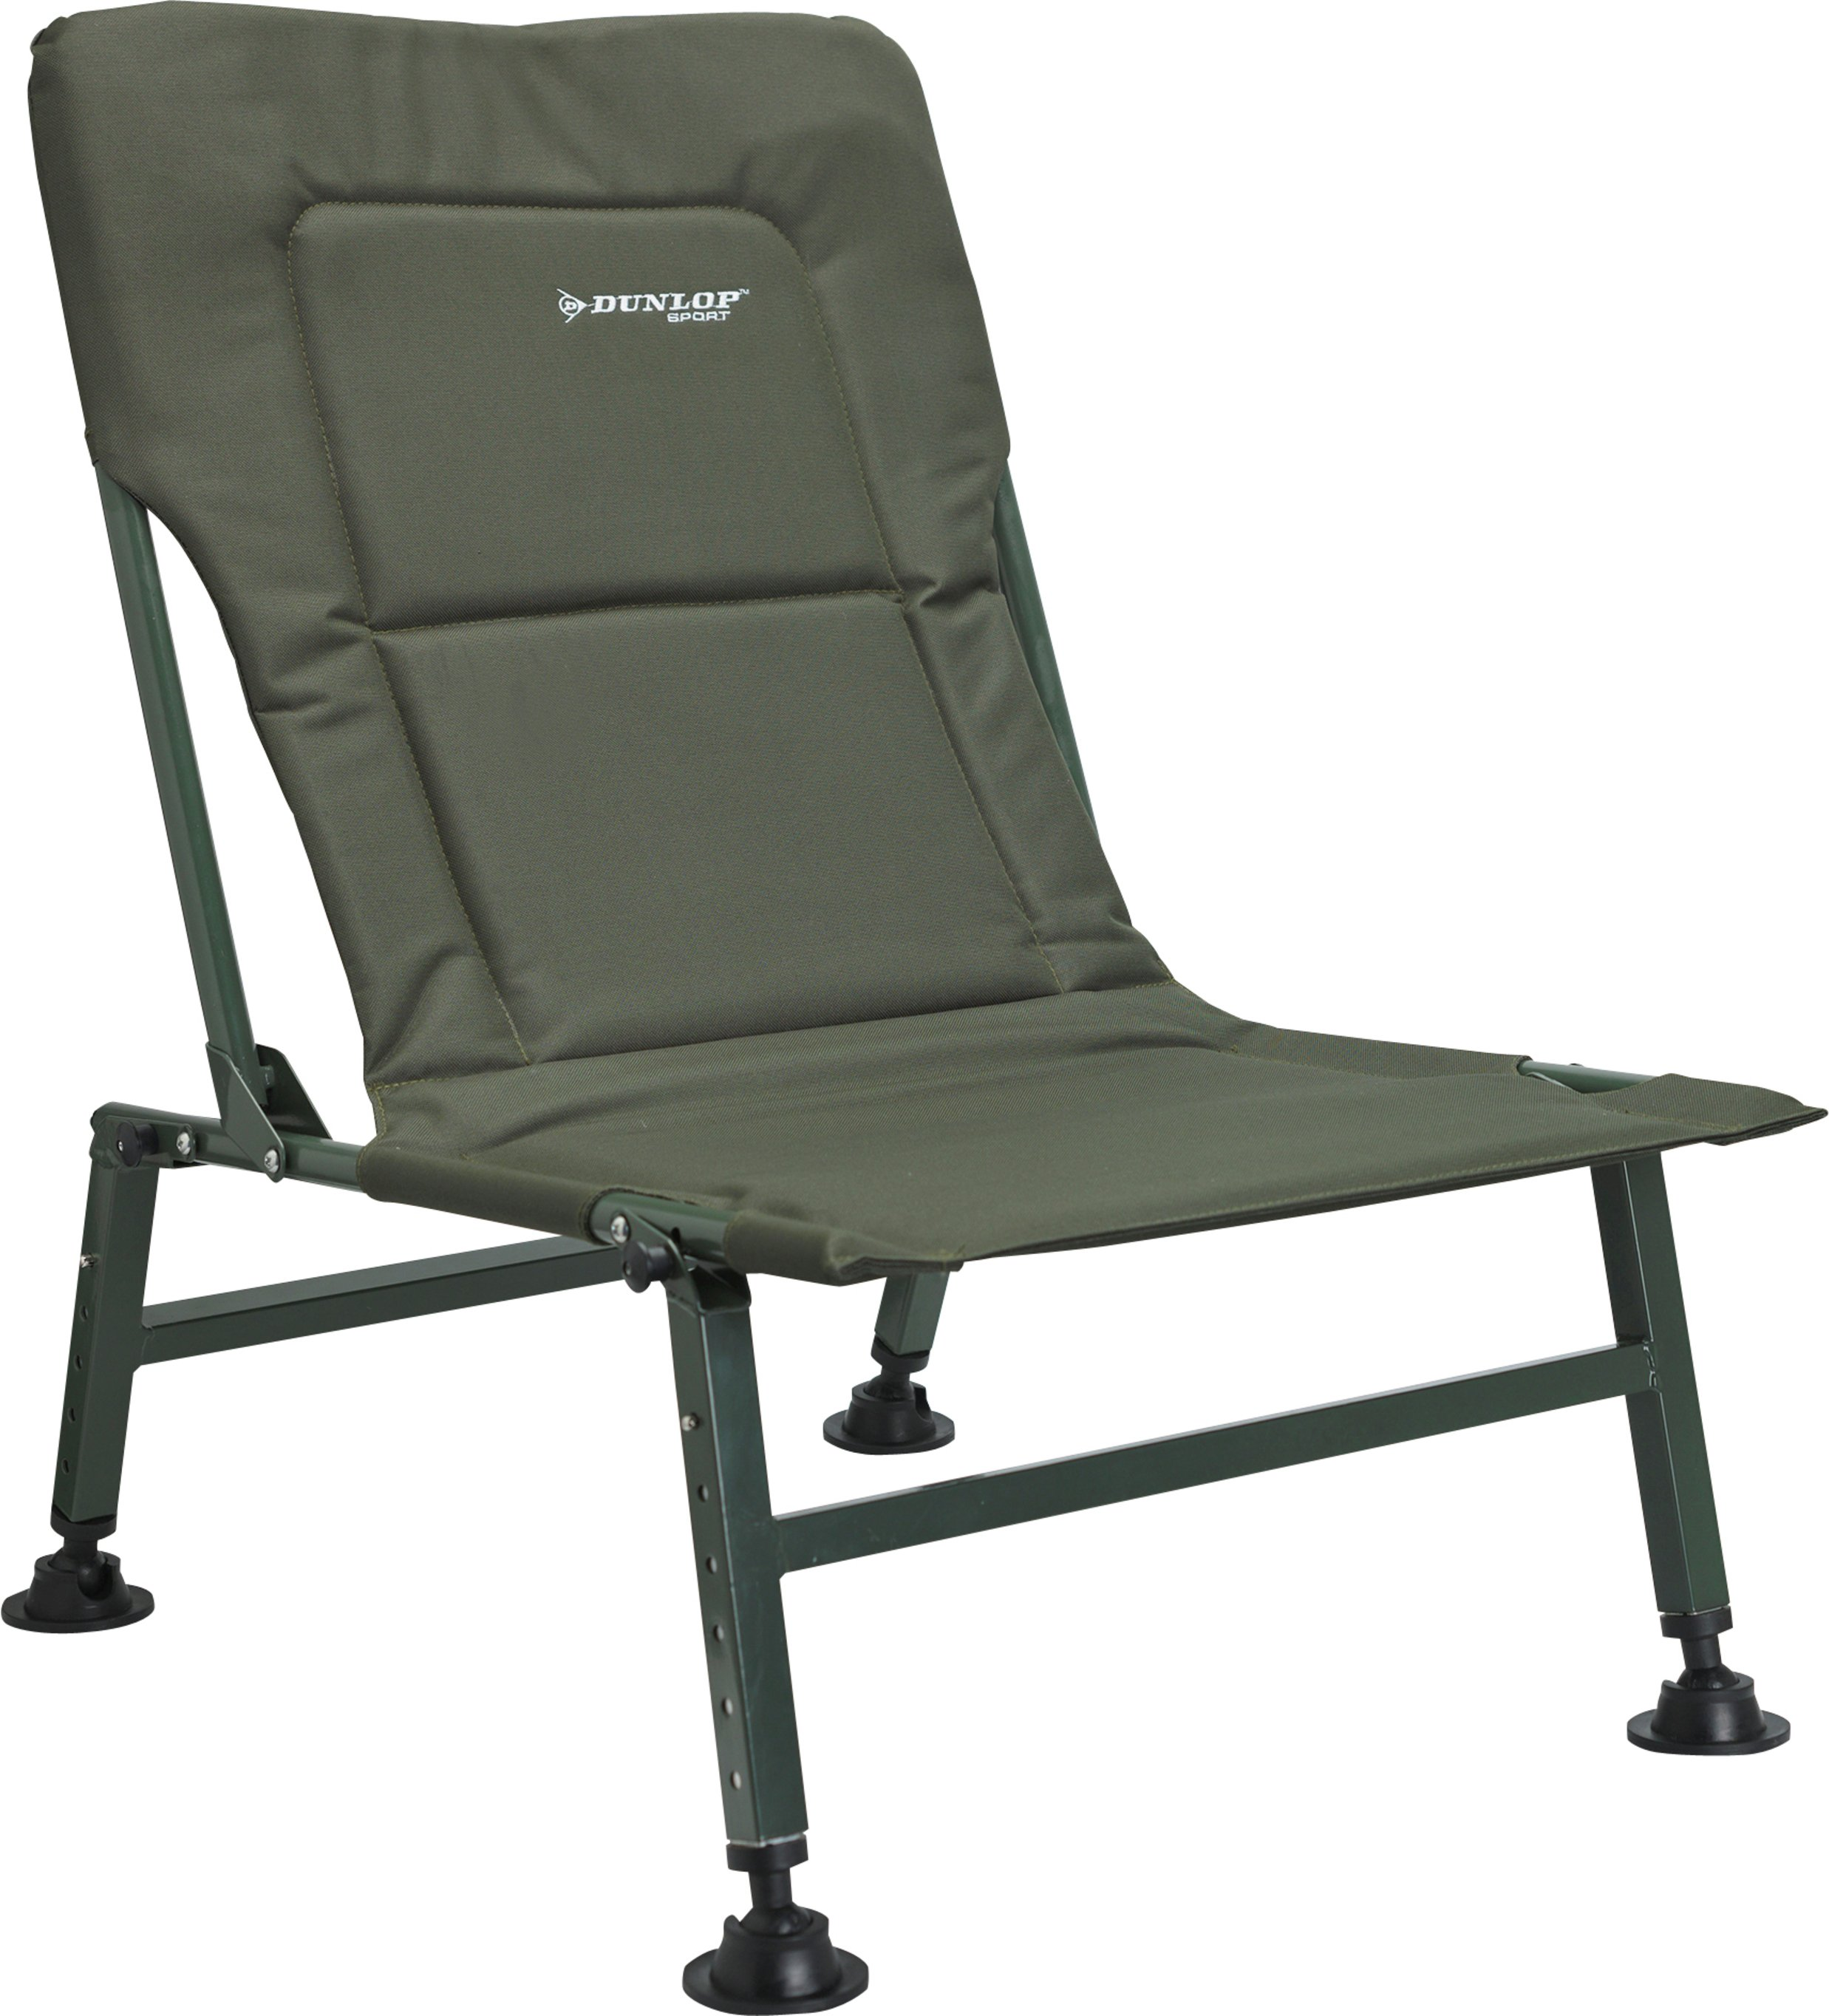 angling chair accessories pedicure chairs uk buy dunlop fishing carp argos click to zoom